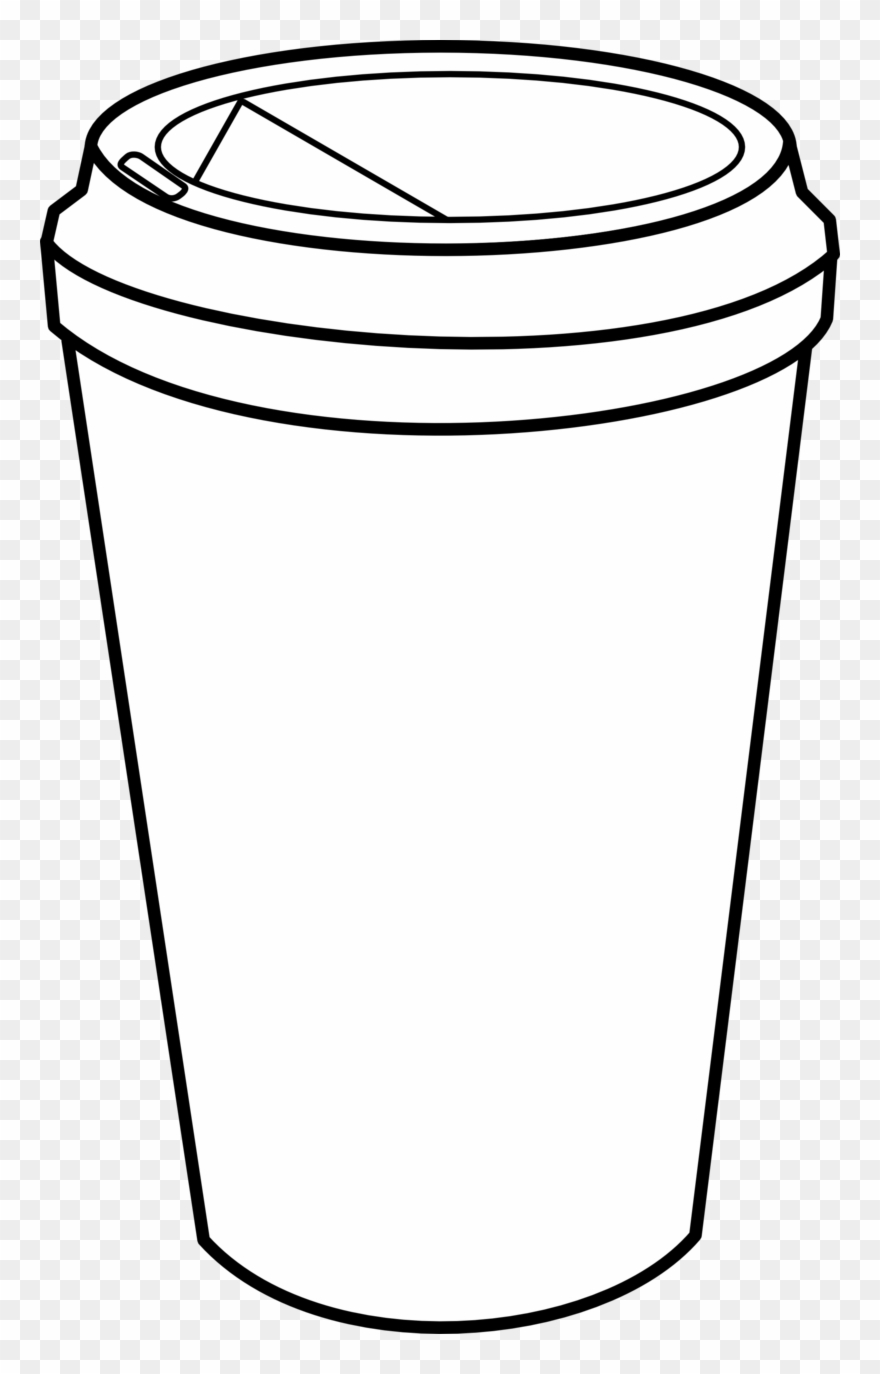 coffee cup coloring pages cups clipart tumbler cup cups tumbler cup transparent cup coloring pages coffee